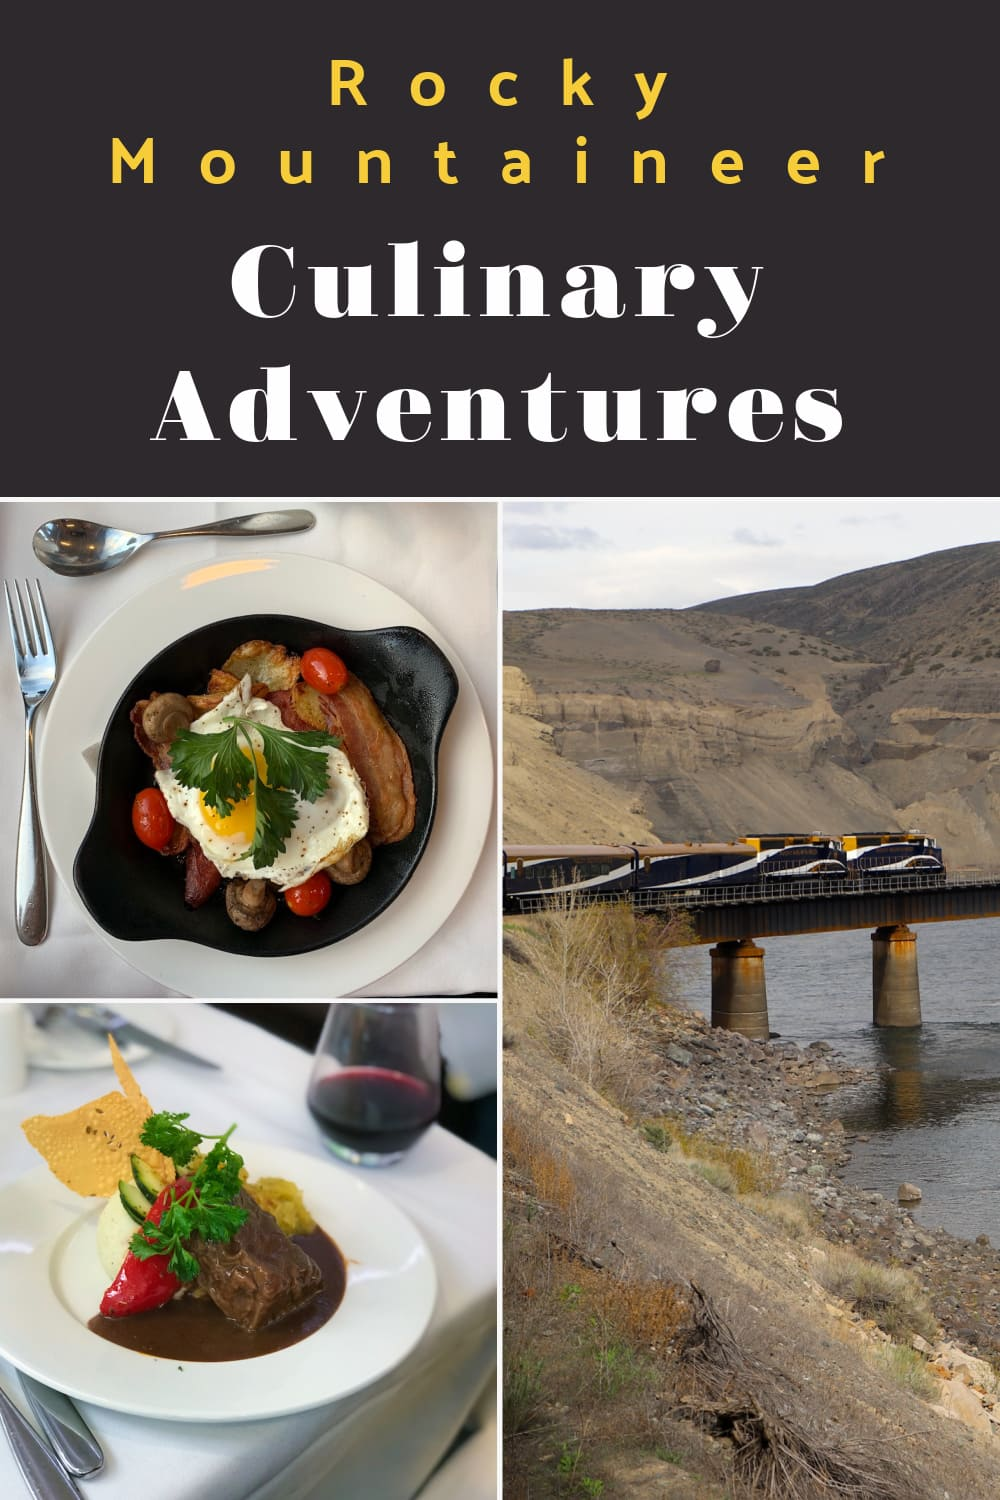 Rocky Mountaineer Canada Culinary Adventures are always exceptional.